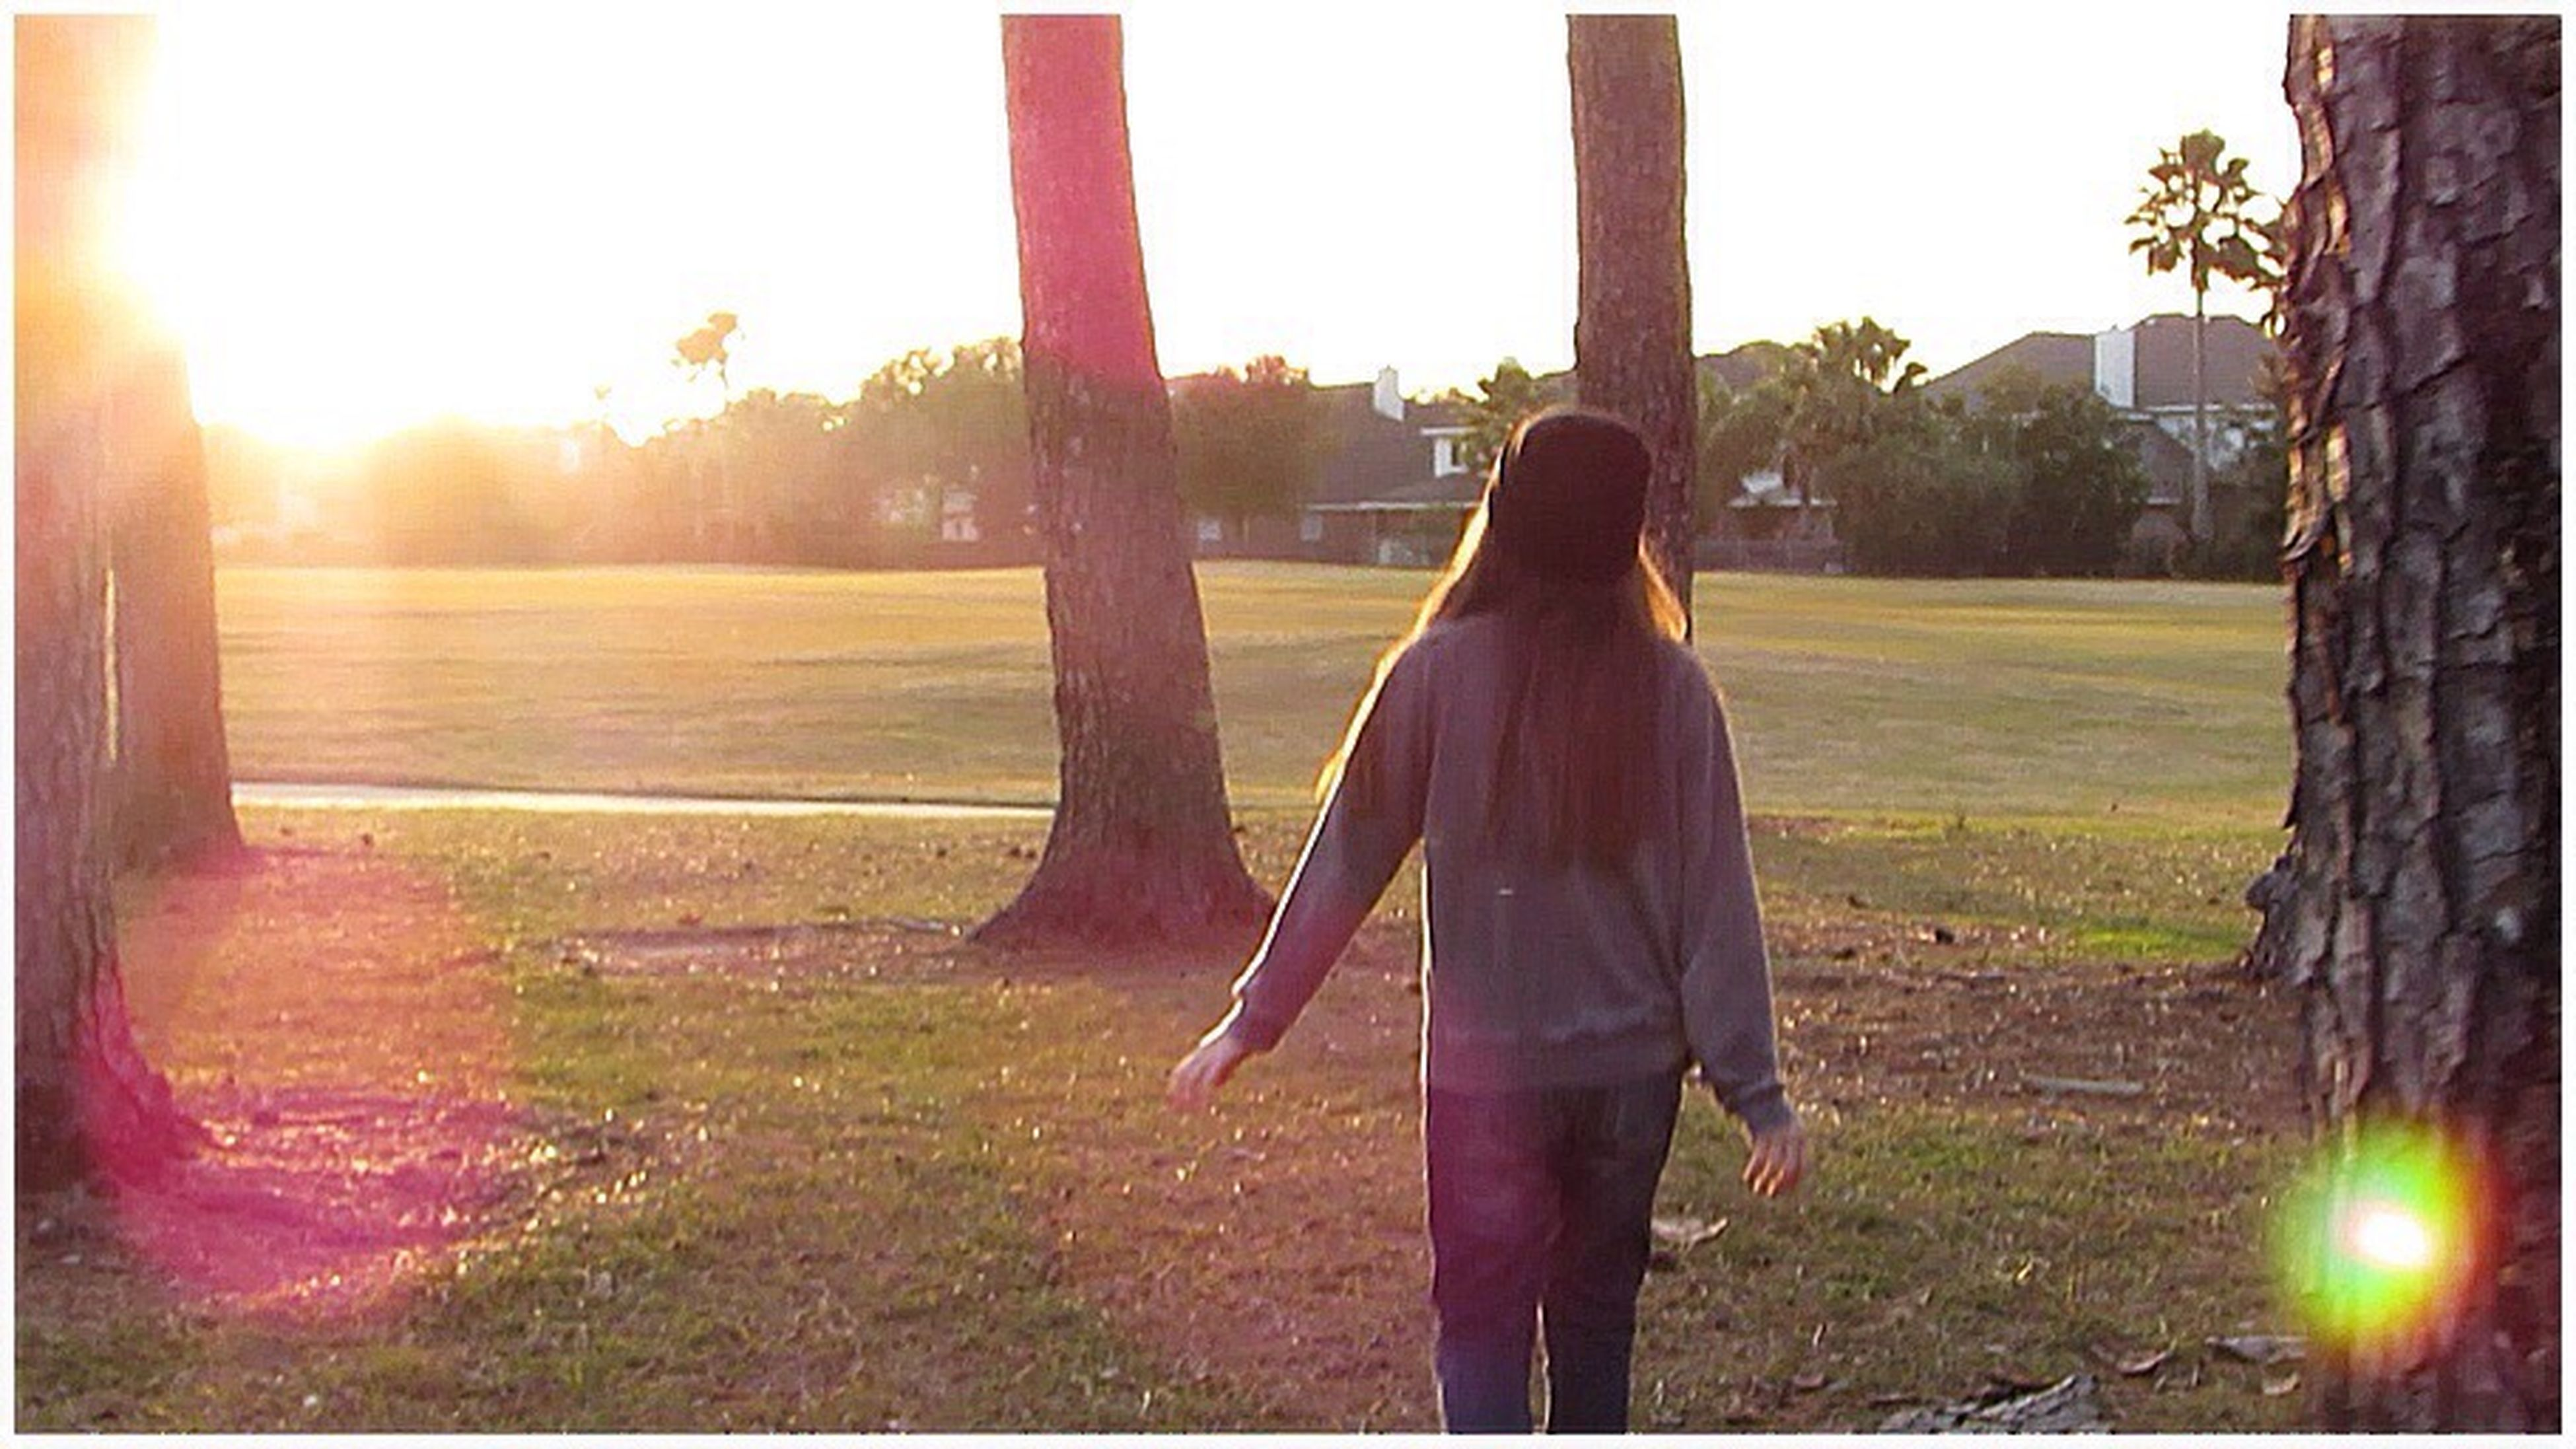 sun, grass, lifestyles, standing, sunlight, lens flare, rear view, sunbeam, leisure activity, field, sunset, tree, casual clothing, full length, person, clear sky, three quarter length, grassy